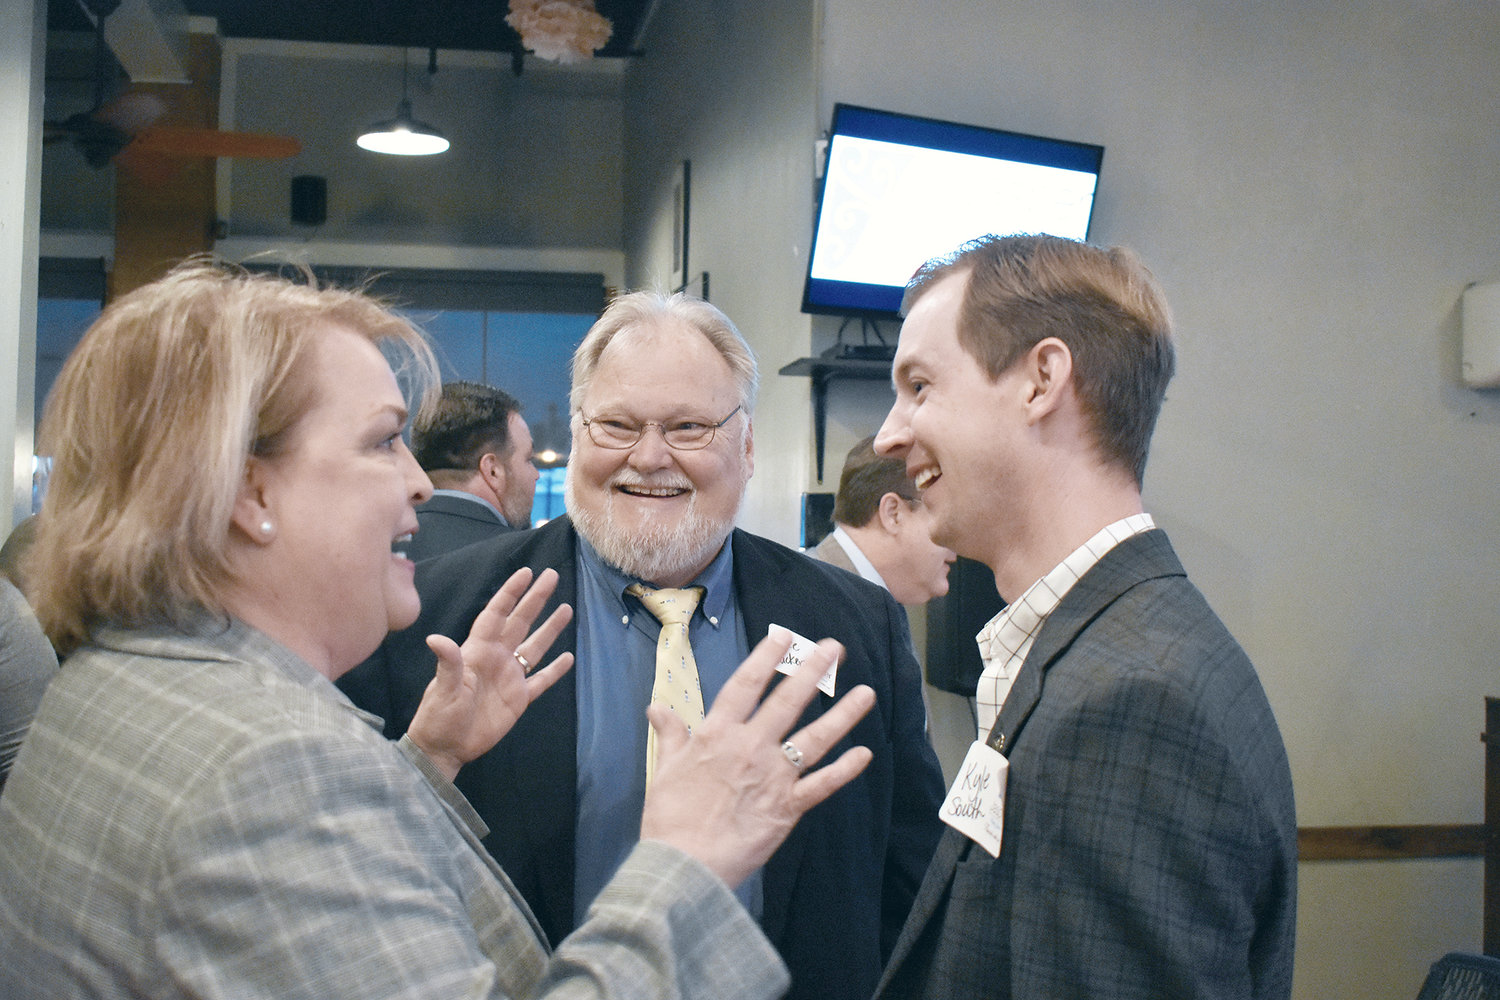 State Rep. Connie Rowe, R-Jasper, left, Walker County Probate Judge Lee Tucker, center, and state Rep. Kyle South, R-Fayette, share a laugh during a Jasper Main Street reception on Tuesday.